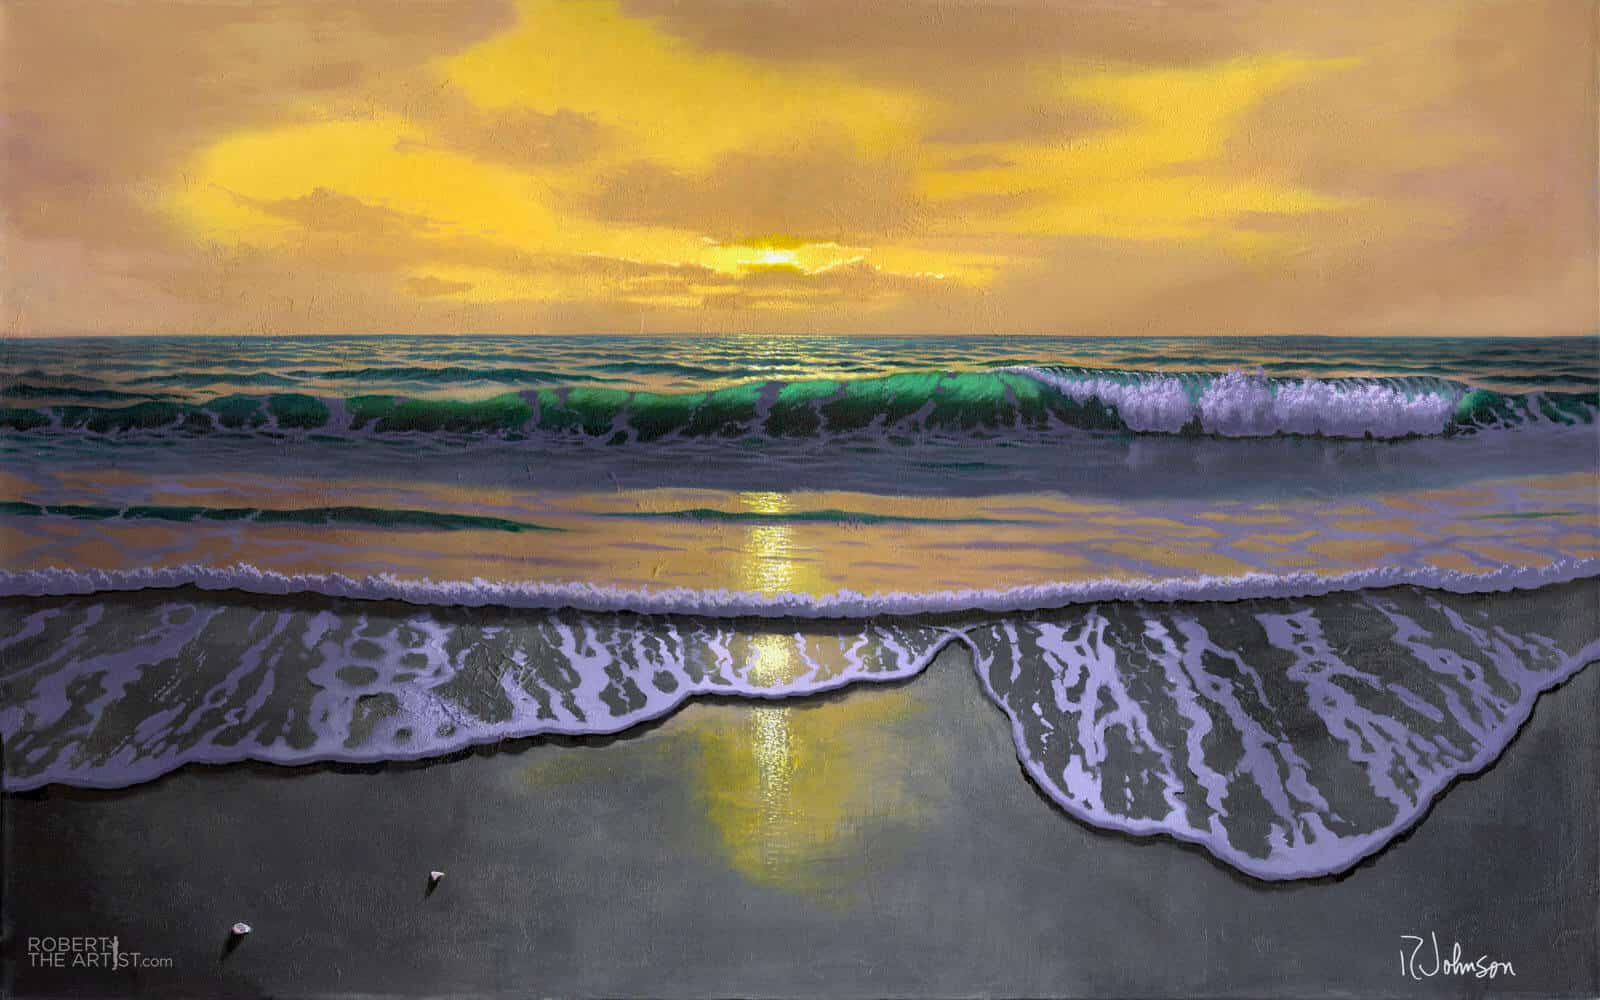 Glowing sunset wave painting